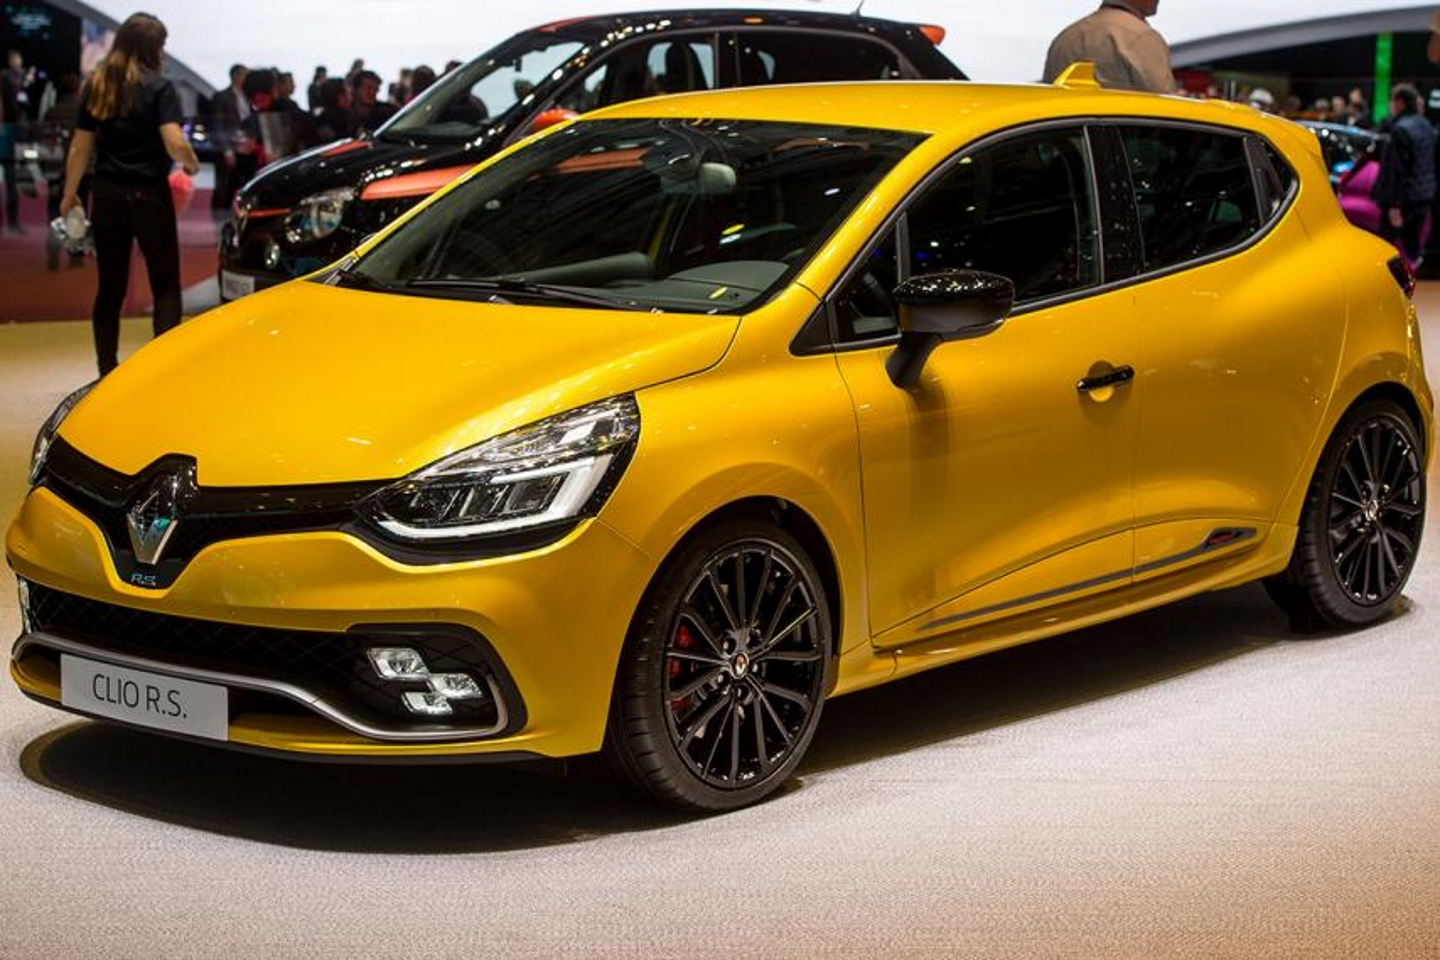 Renault Clio RS. Фото: Robert Hradil/Getty Images